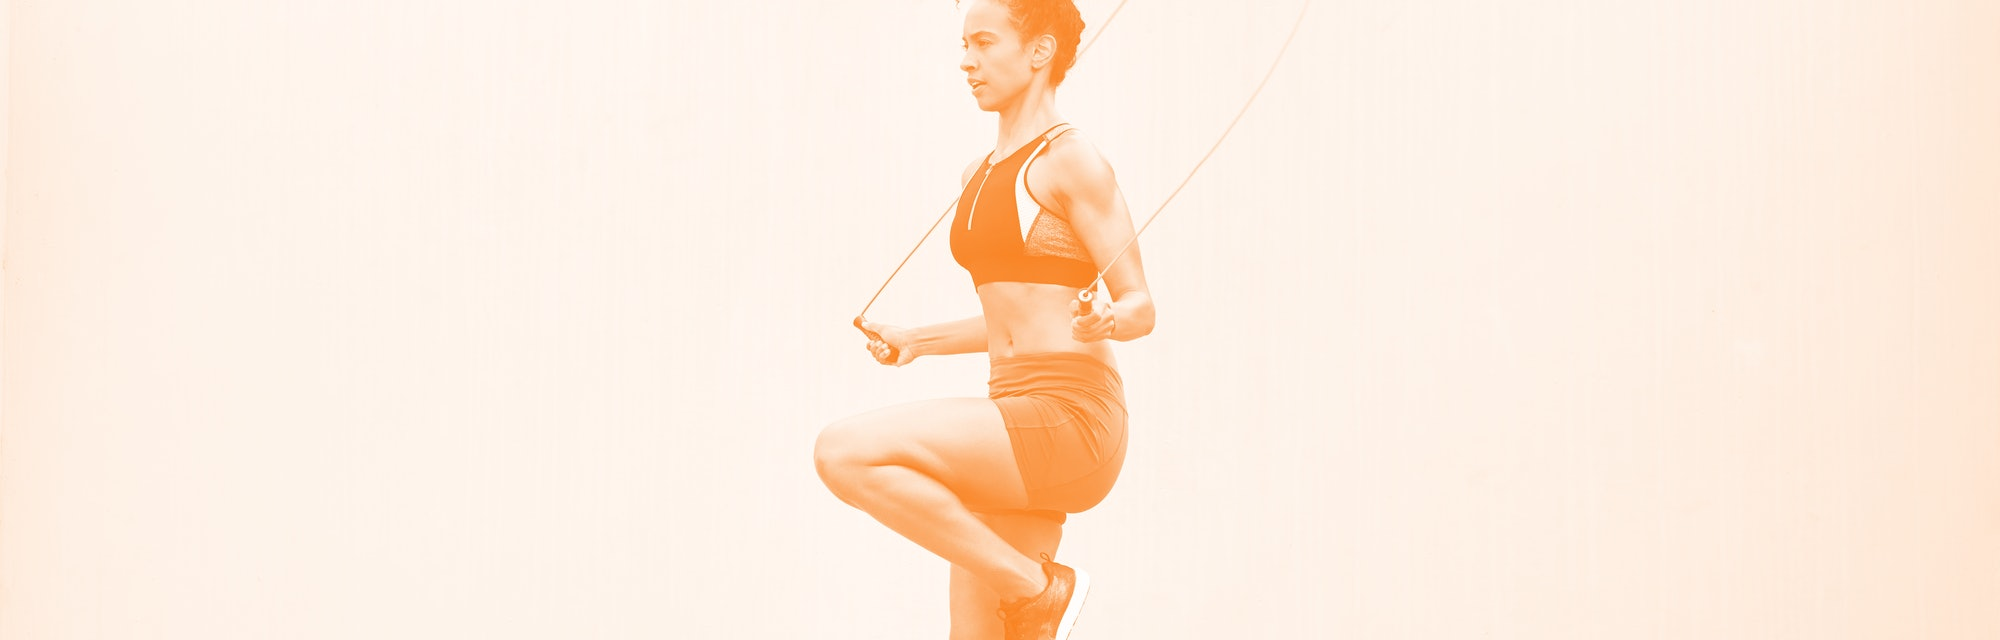 Girl jumping rope.